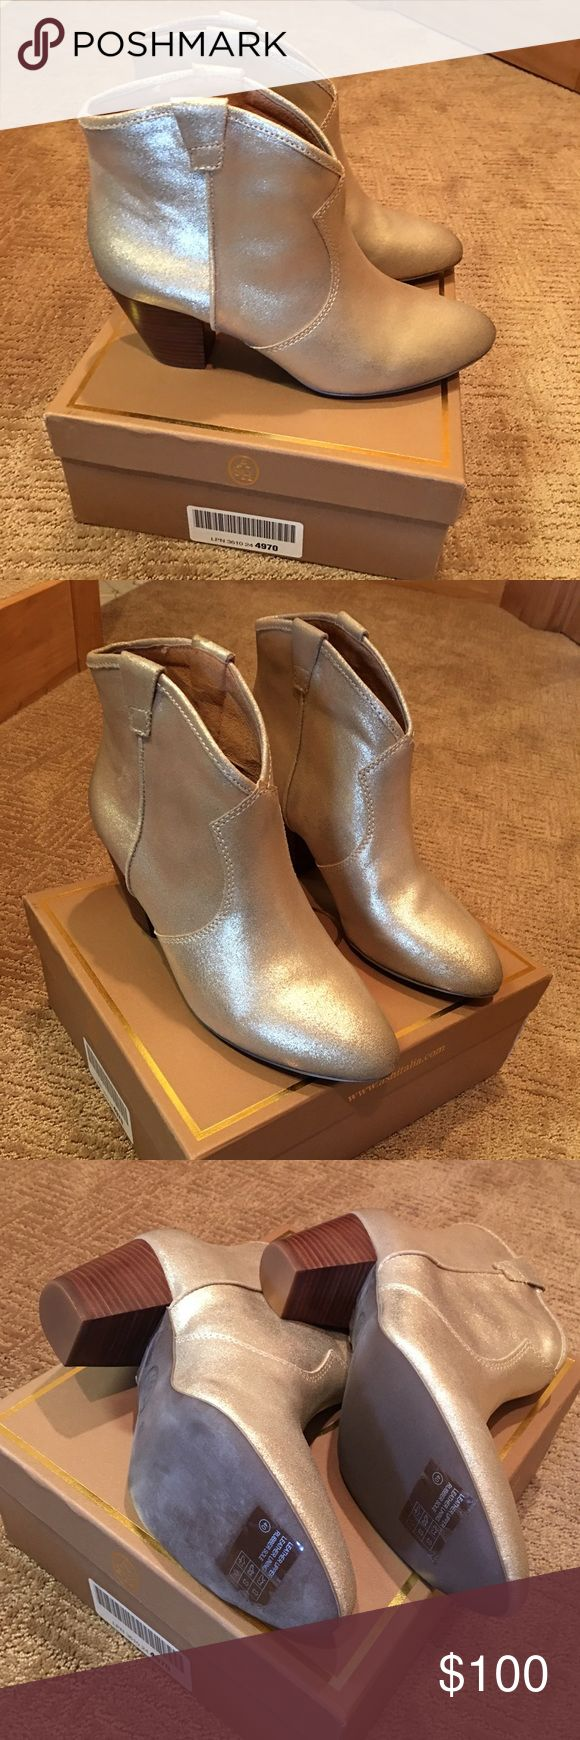 NIB gorgeous Ash boots NIB Ash boots gold size 40 (US 10). Come with box and dust bag Ash Shoes Ankle Boots & Booties